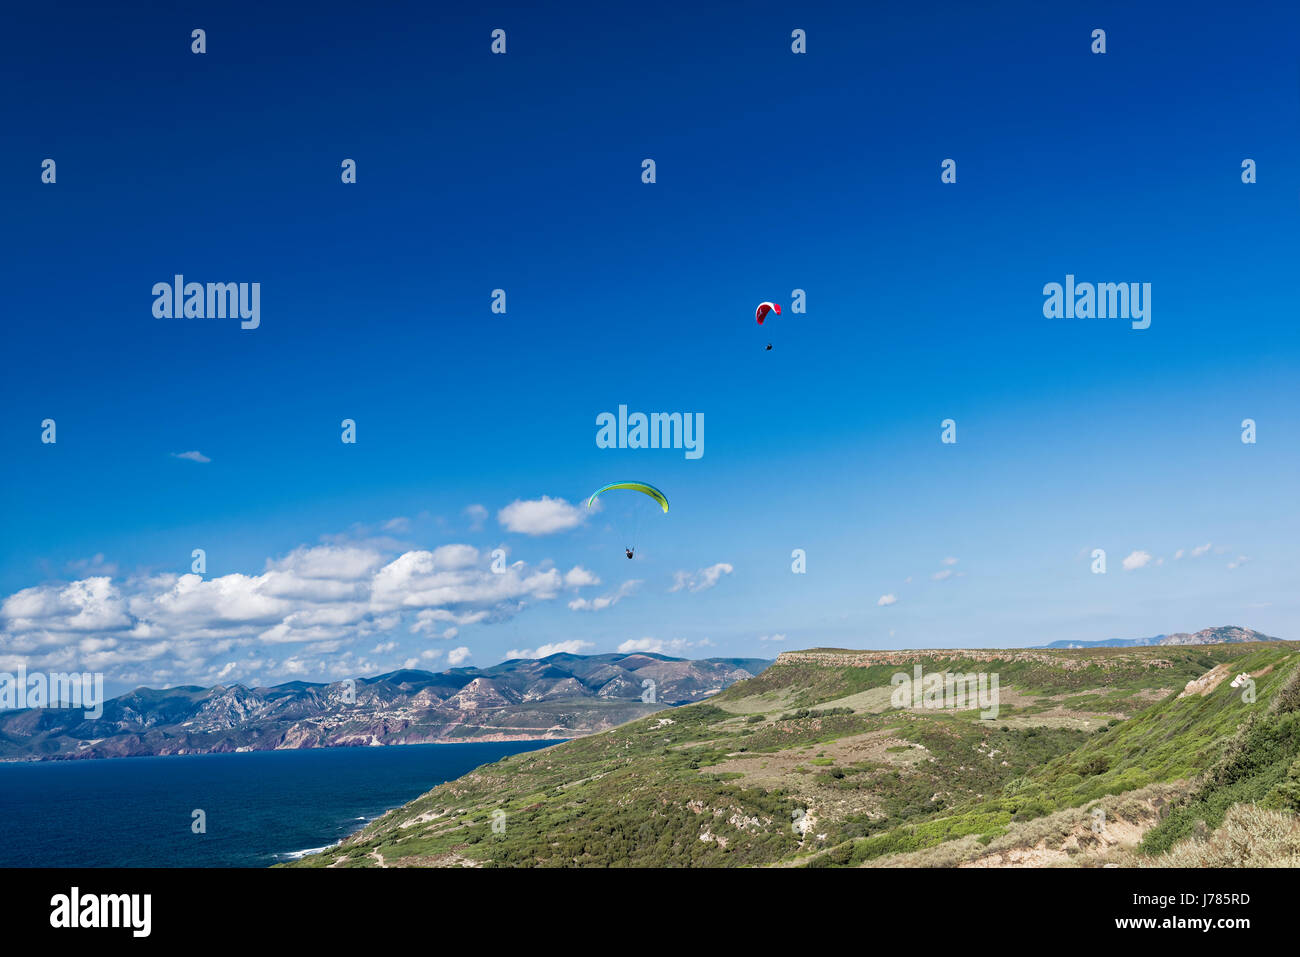 Colorful hang glider in sky over blue sea - Stock Image